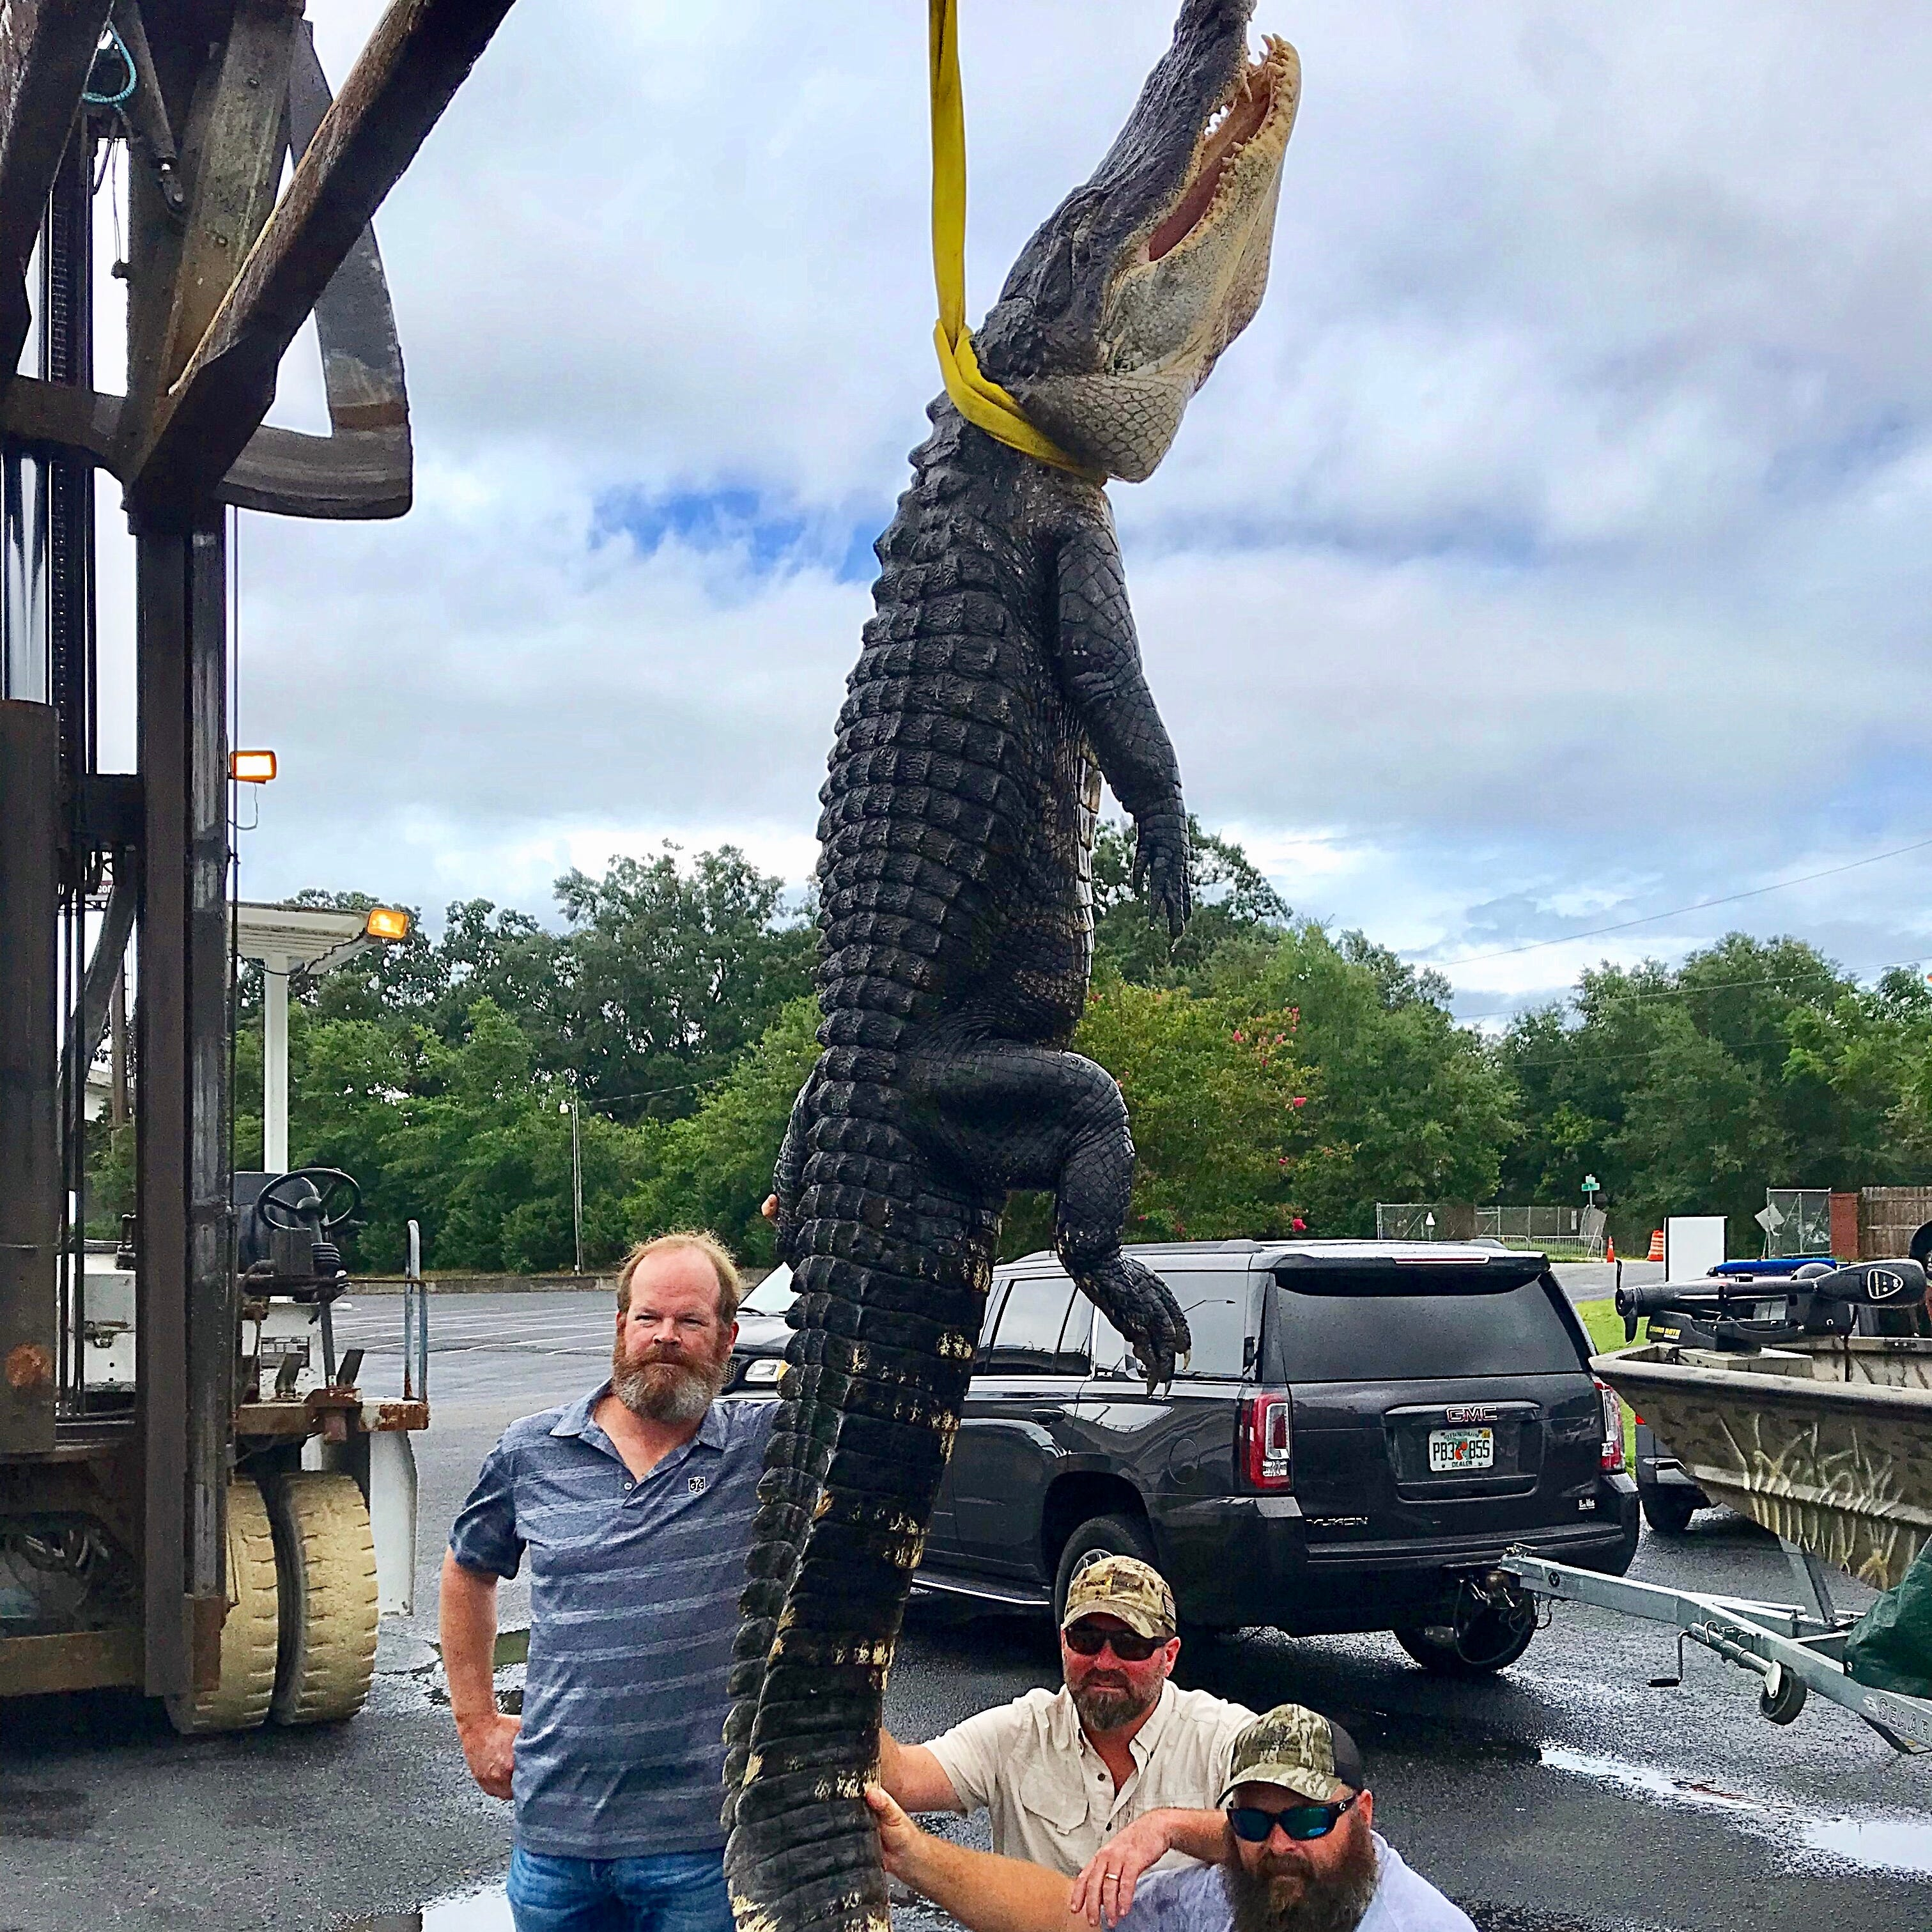 12-foot gator caught on first day of alligator hunting season by Pensacola charter